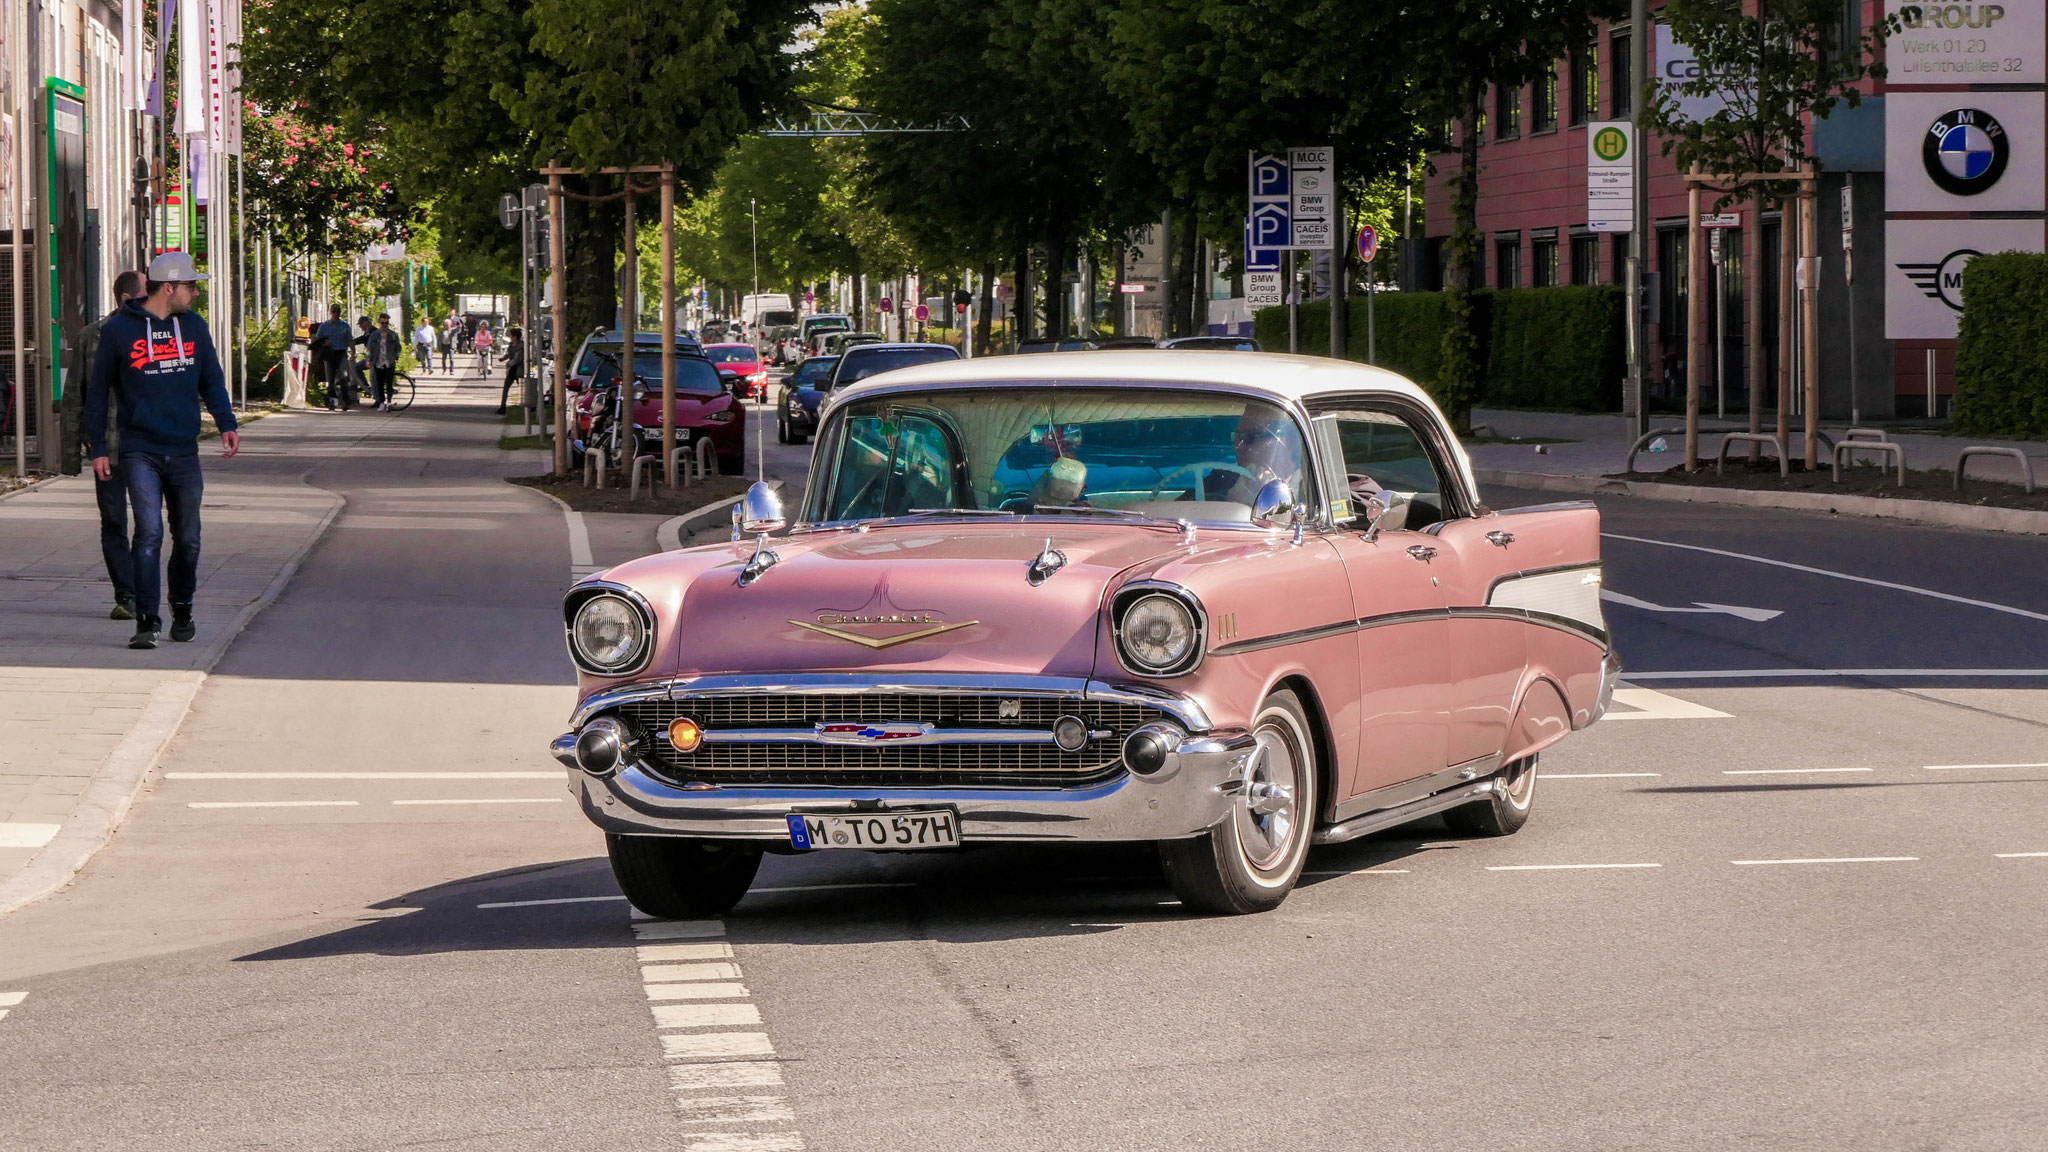 Chevrolet Bel Air - M-TO-57H